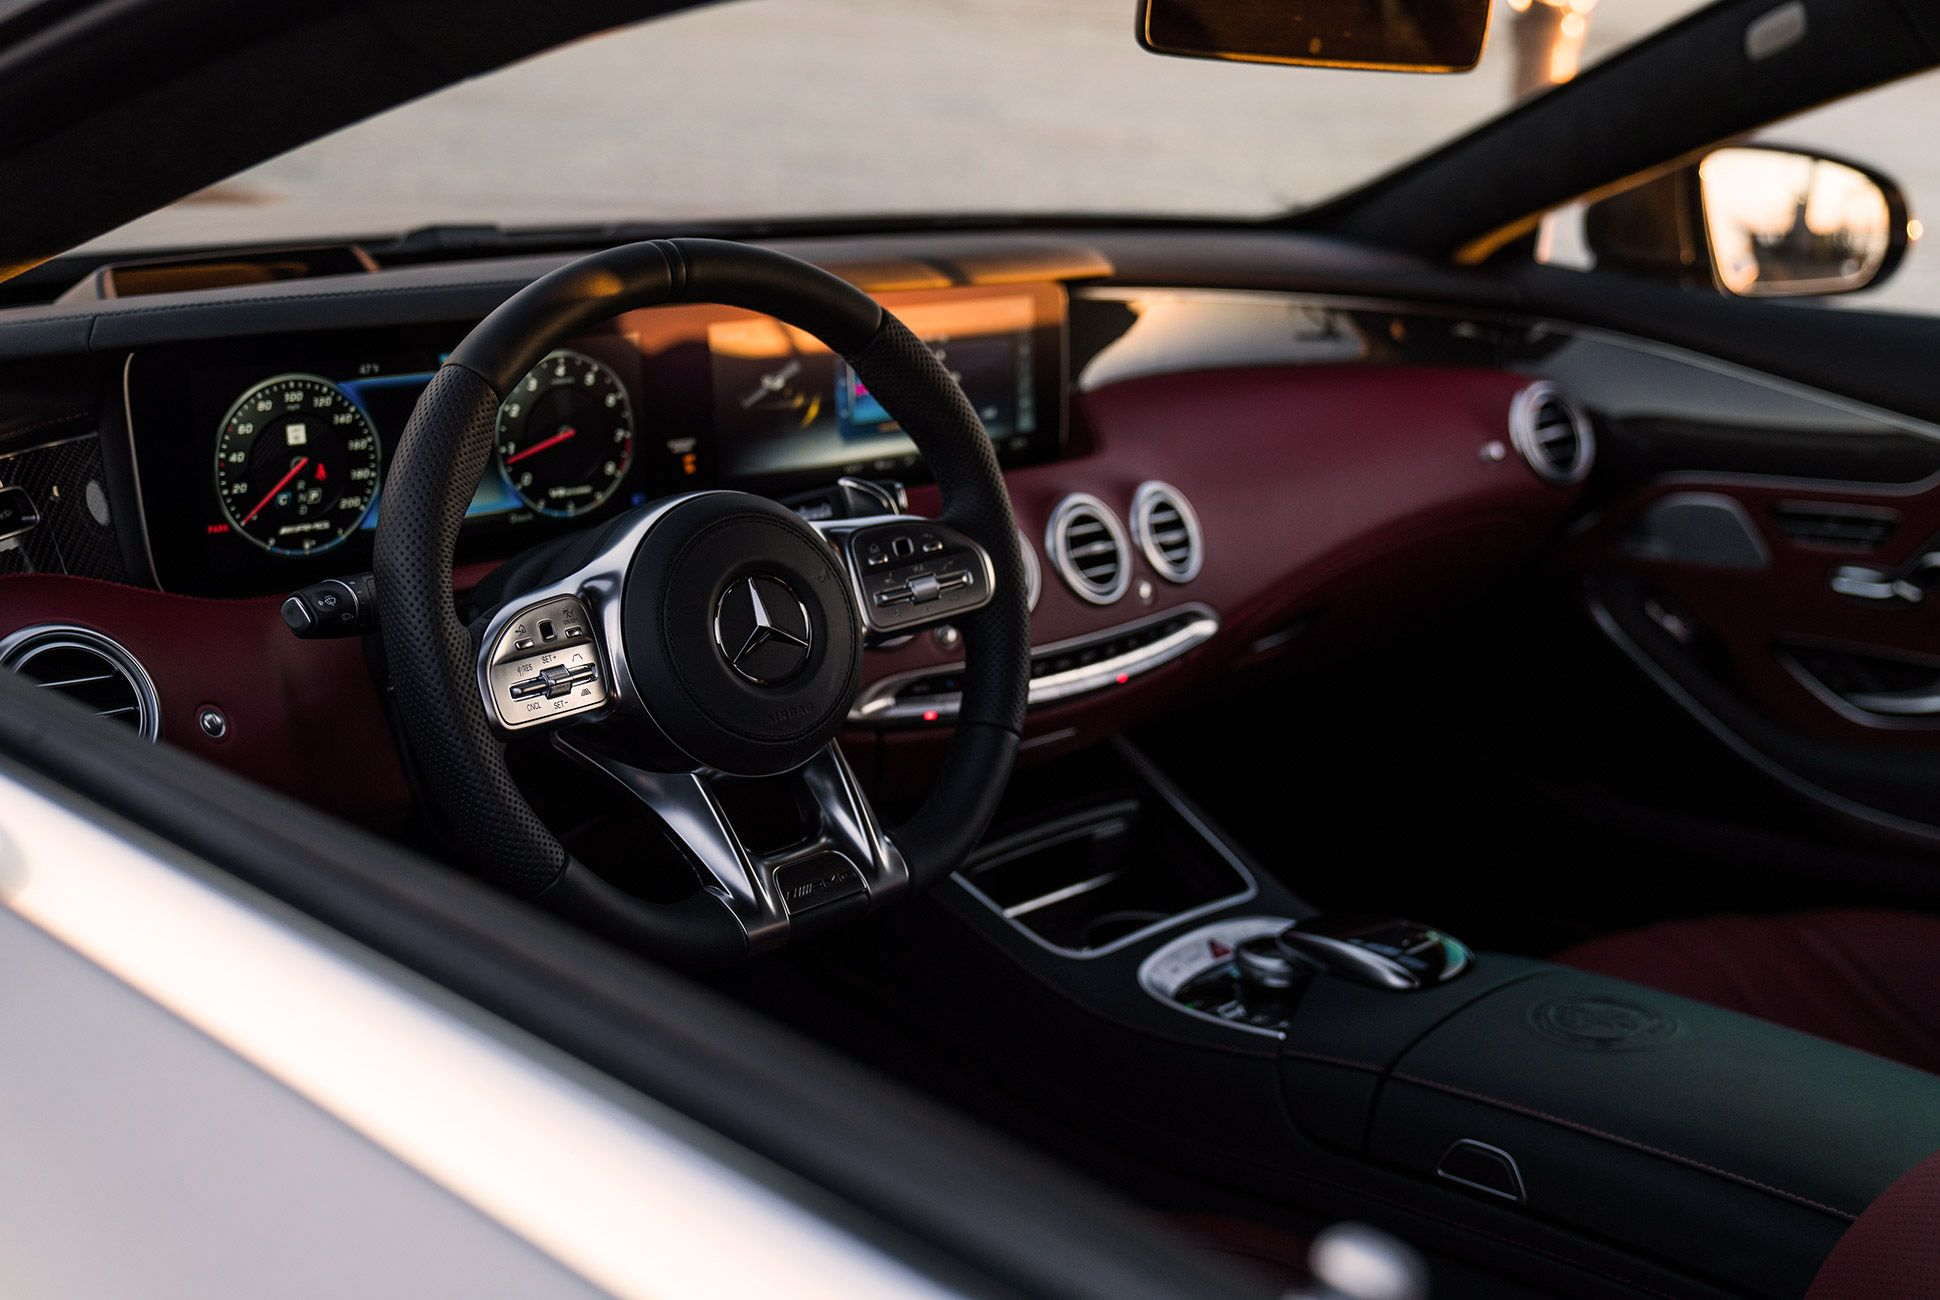 Mercedes-Benz-S63-AMG-Coupe-Review-gear-patrol-4